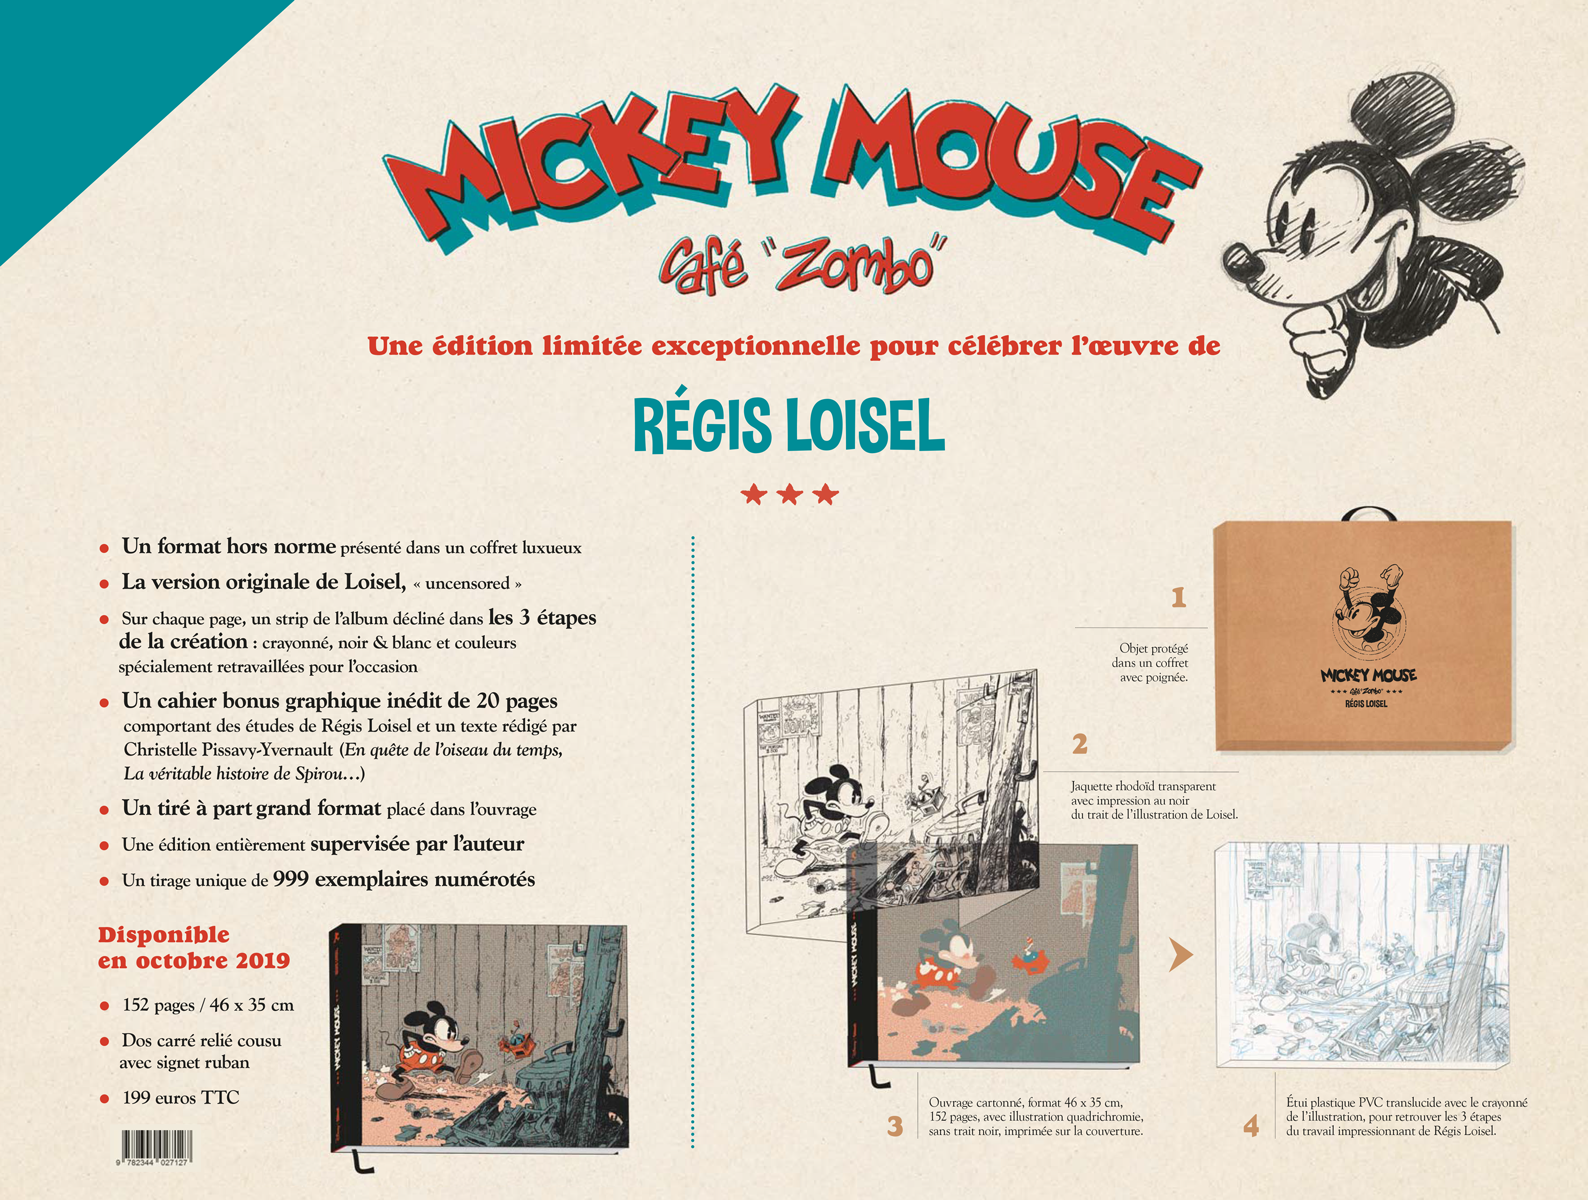 Mickey Mouse Caf 233 Zombo Tirage De Luxe R 233 Gis Loisel